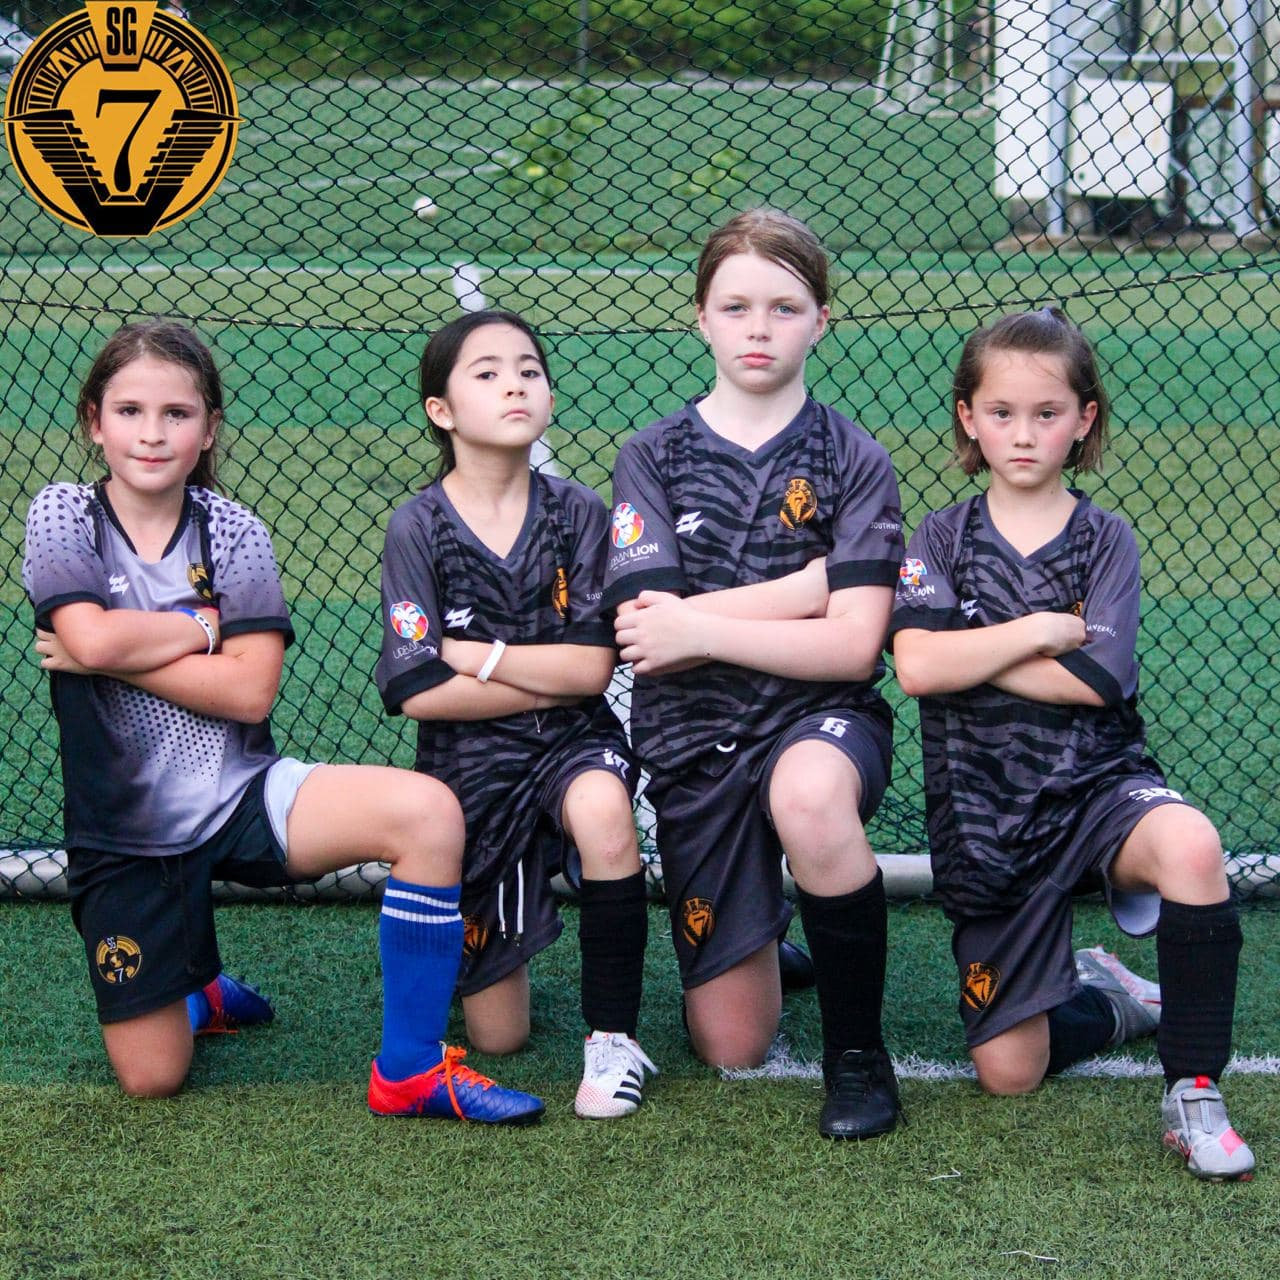 Players Under 8 Years Old